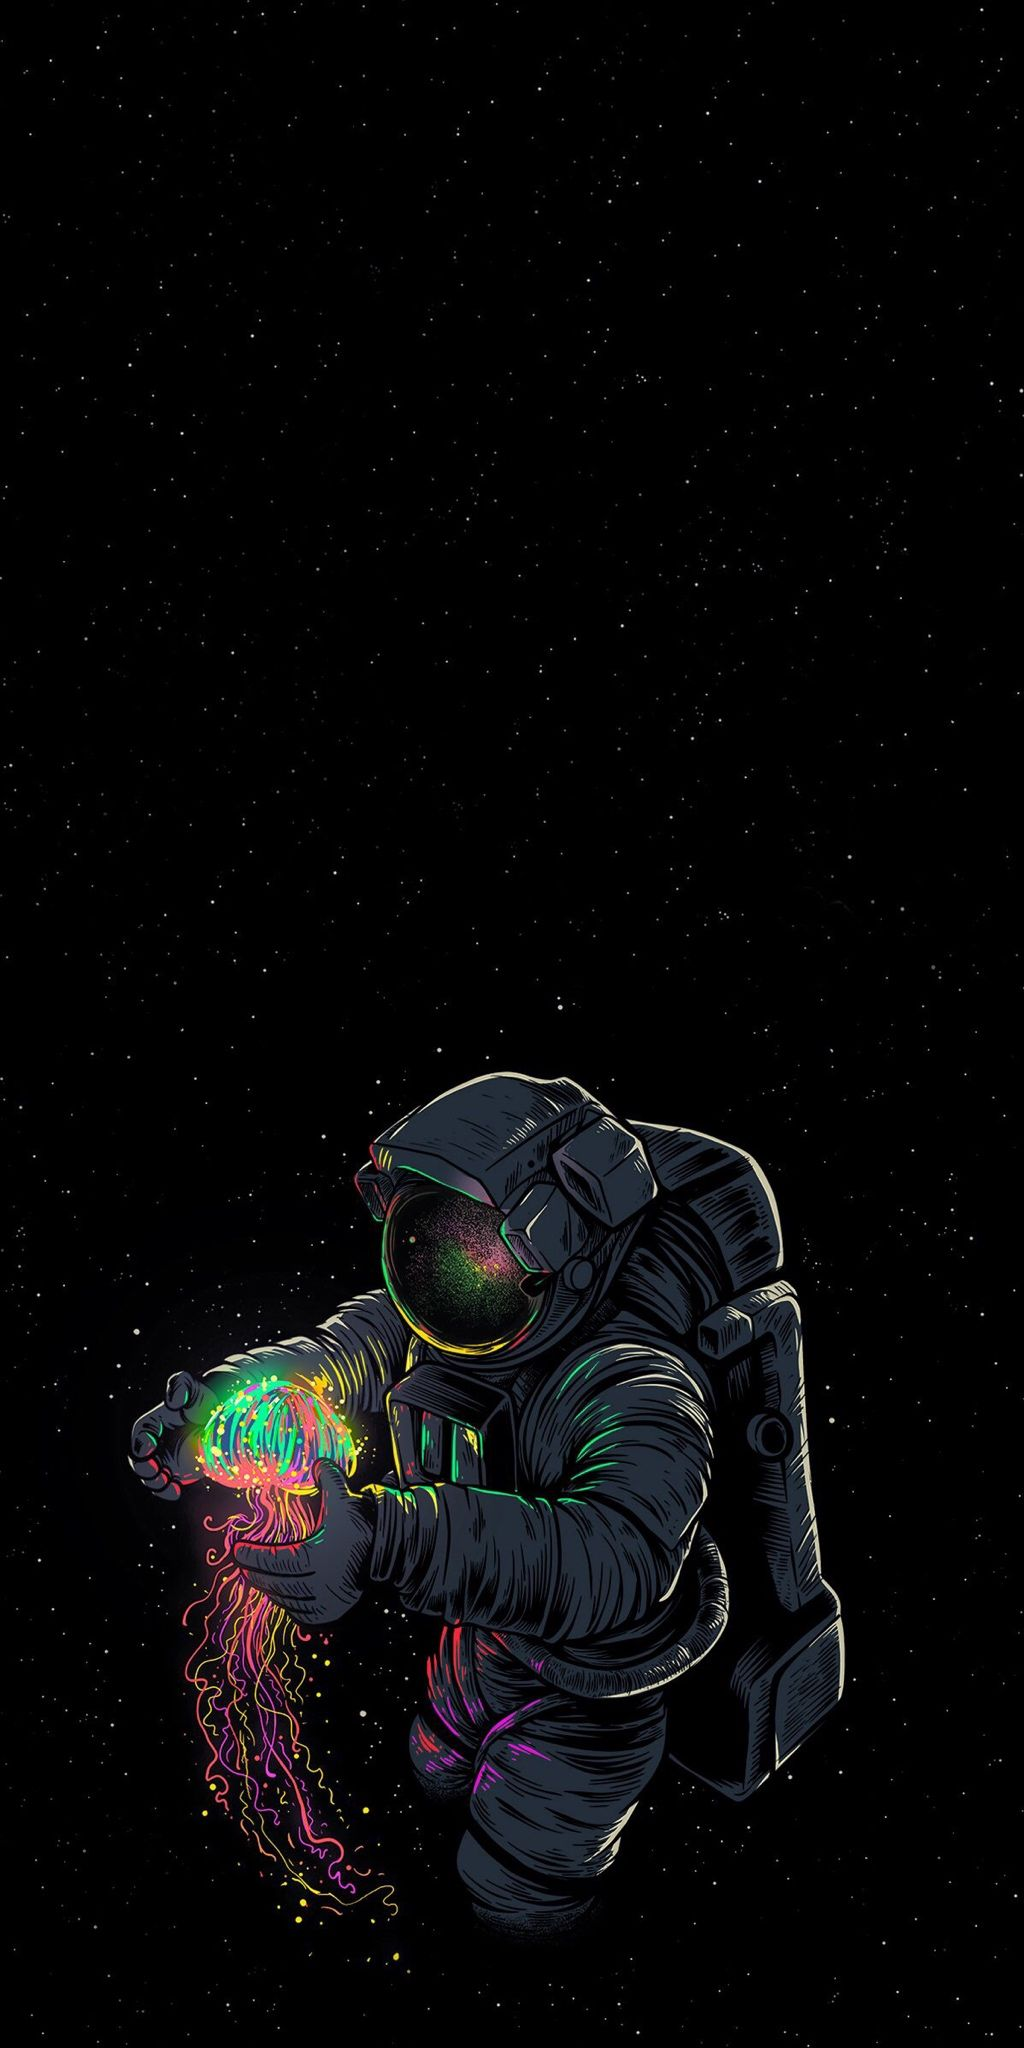 Amoled Wallpapers I Use wallpaper post Astronaut